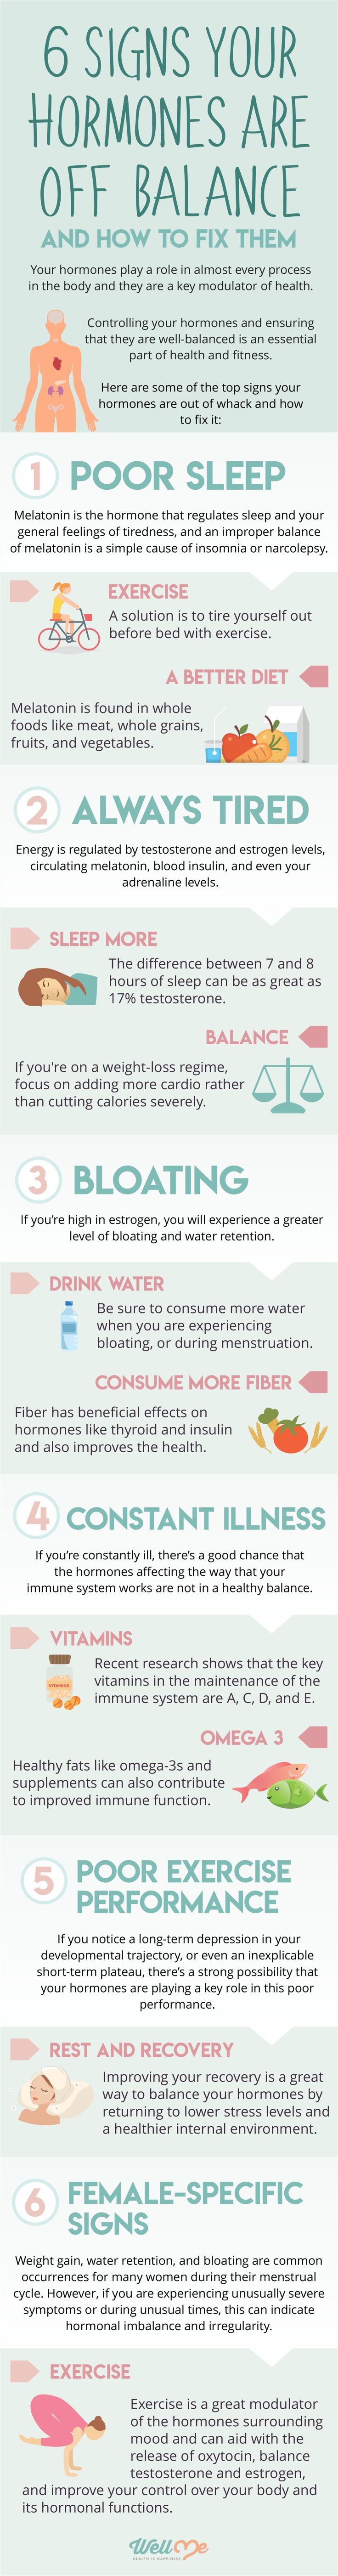 infographic 6 signs your hormones are off balance